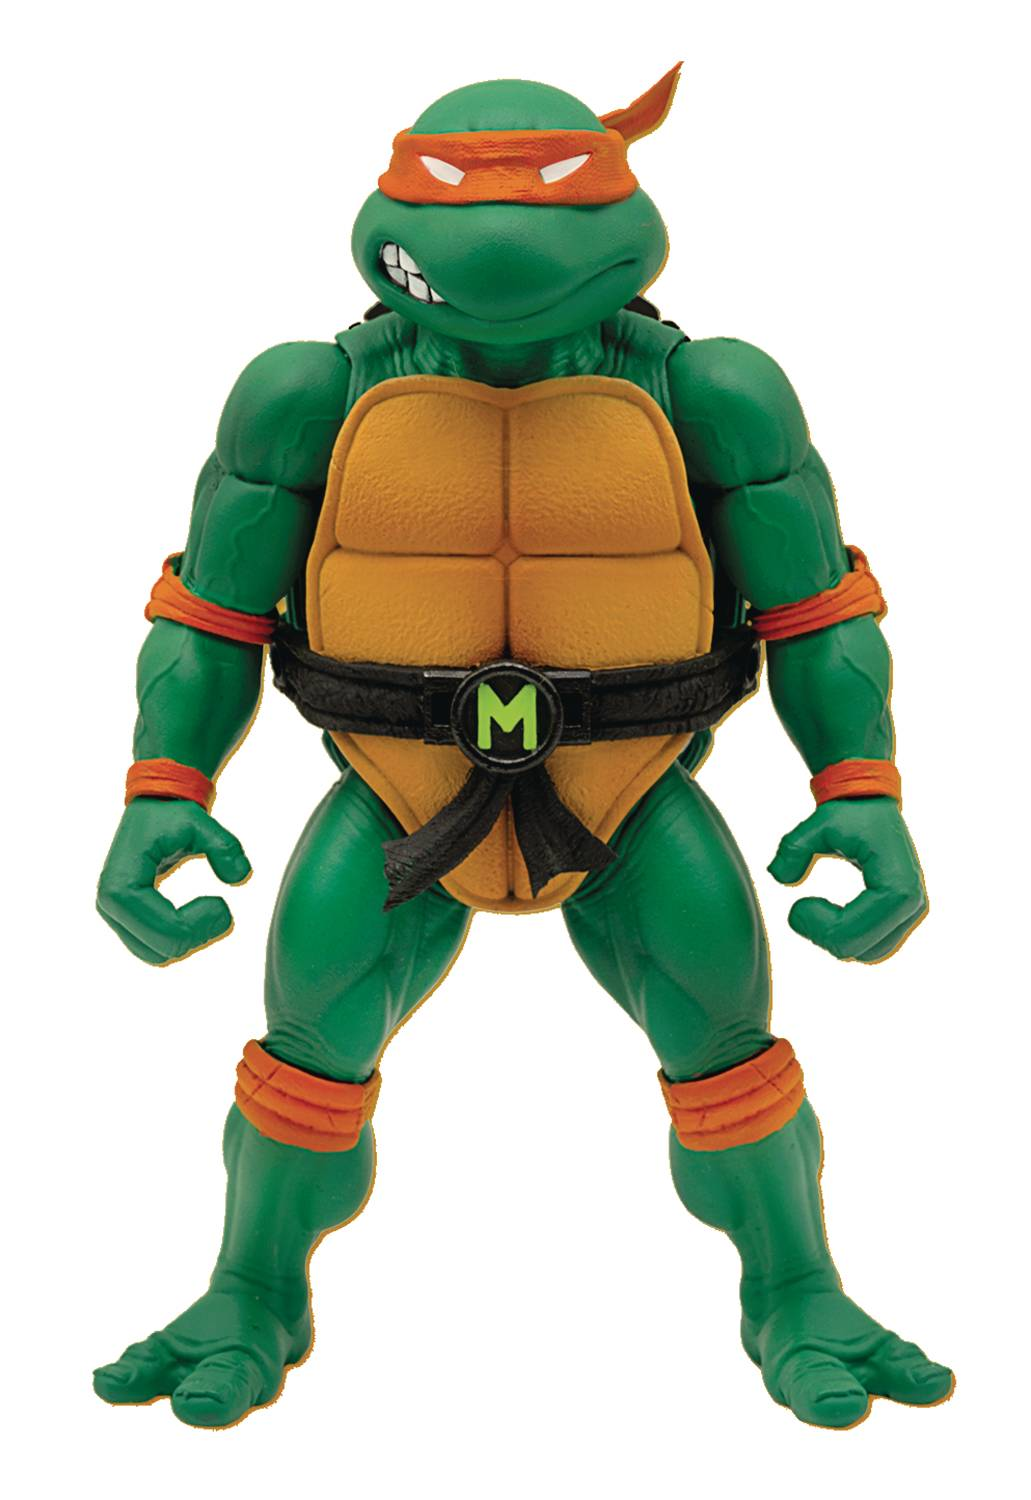 TMNT ULTIMATES WAVE 3 MICHELANGELO ACTION FIGURE